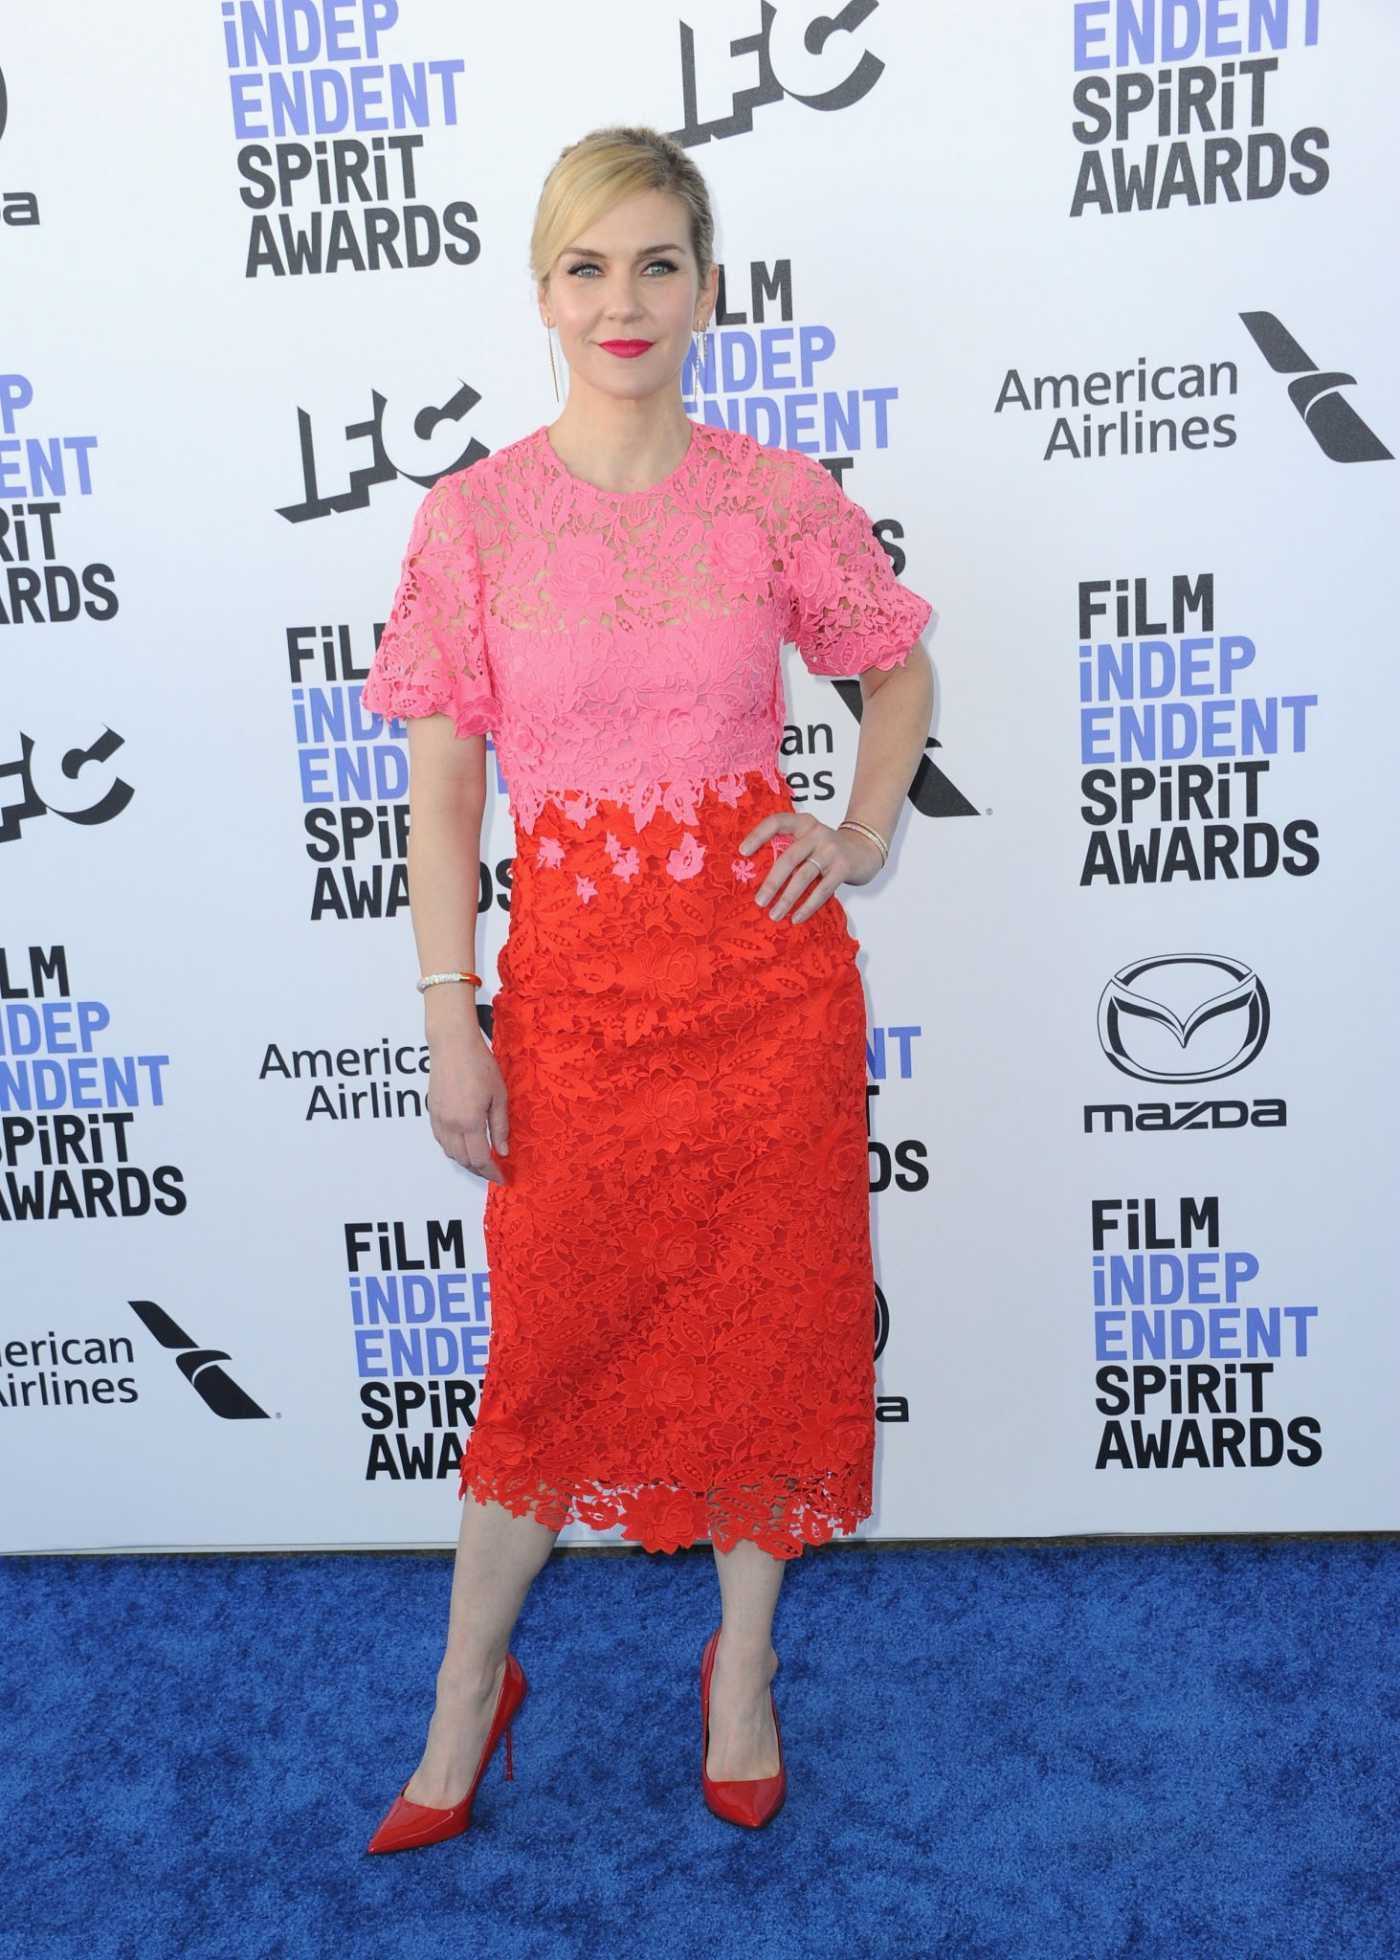 Rhea Seehorn Attends the 35th Film Independent Spirit Awards in Santa Monica 02/08/2020